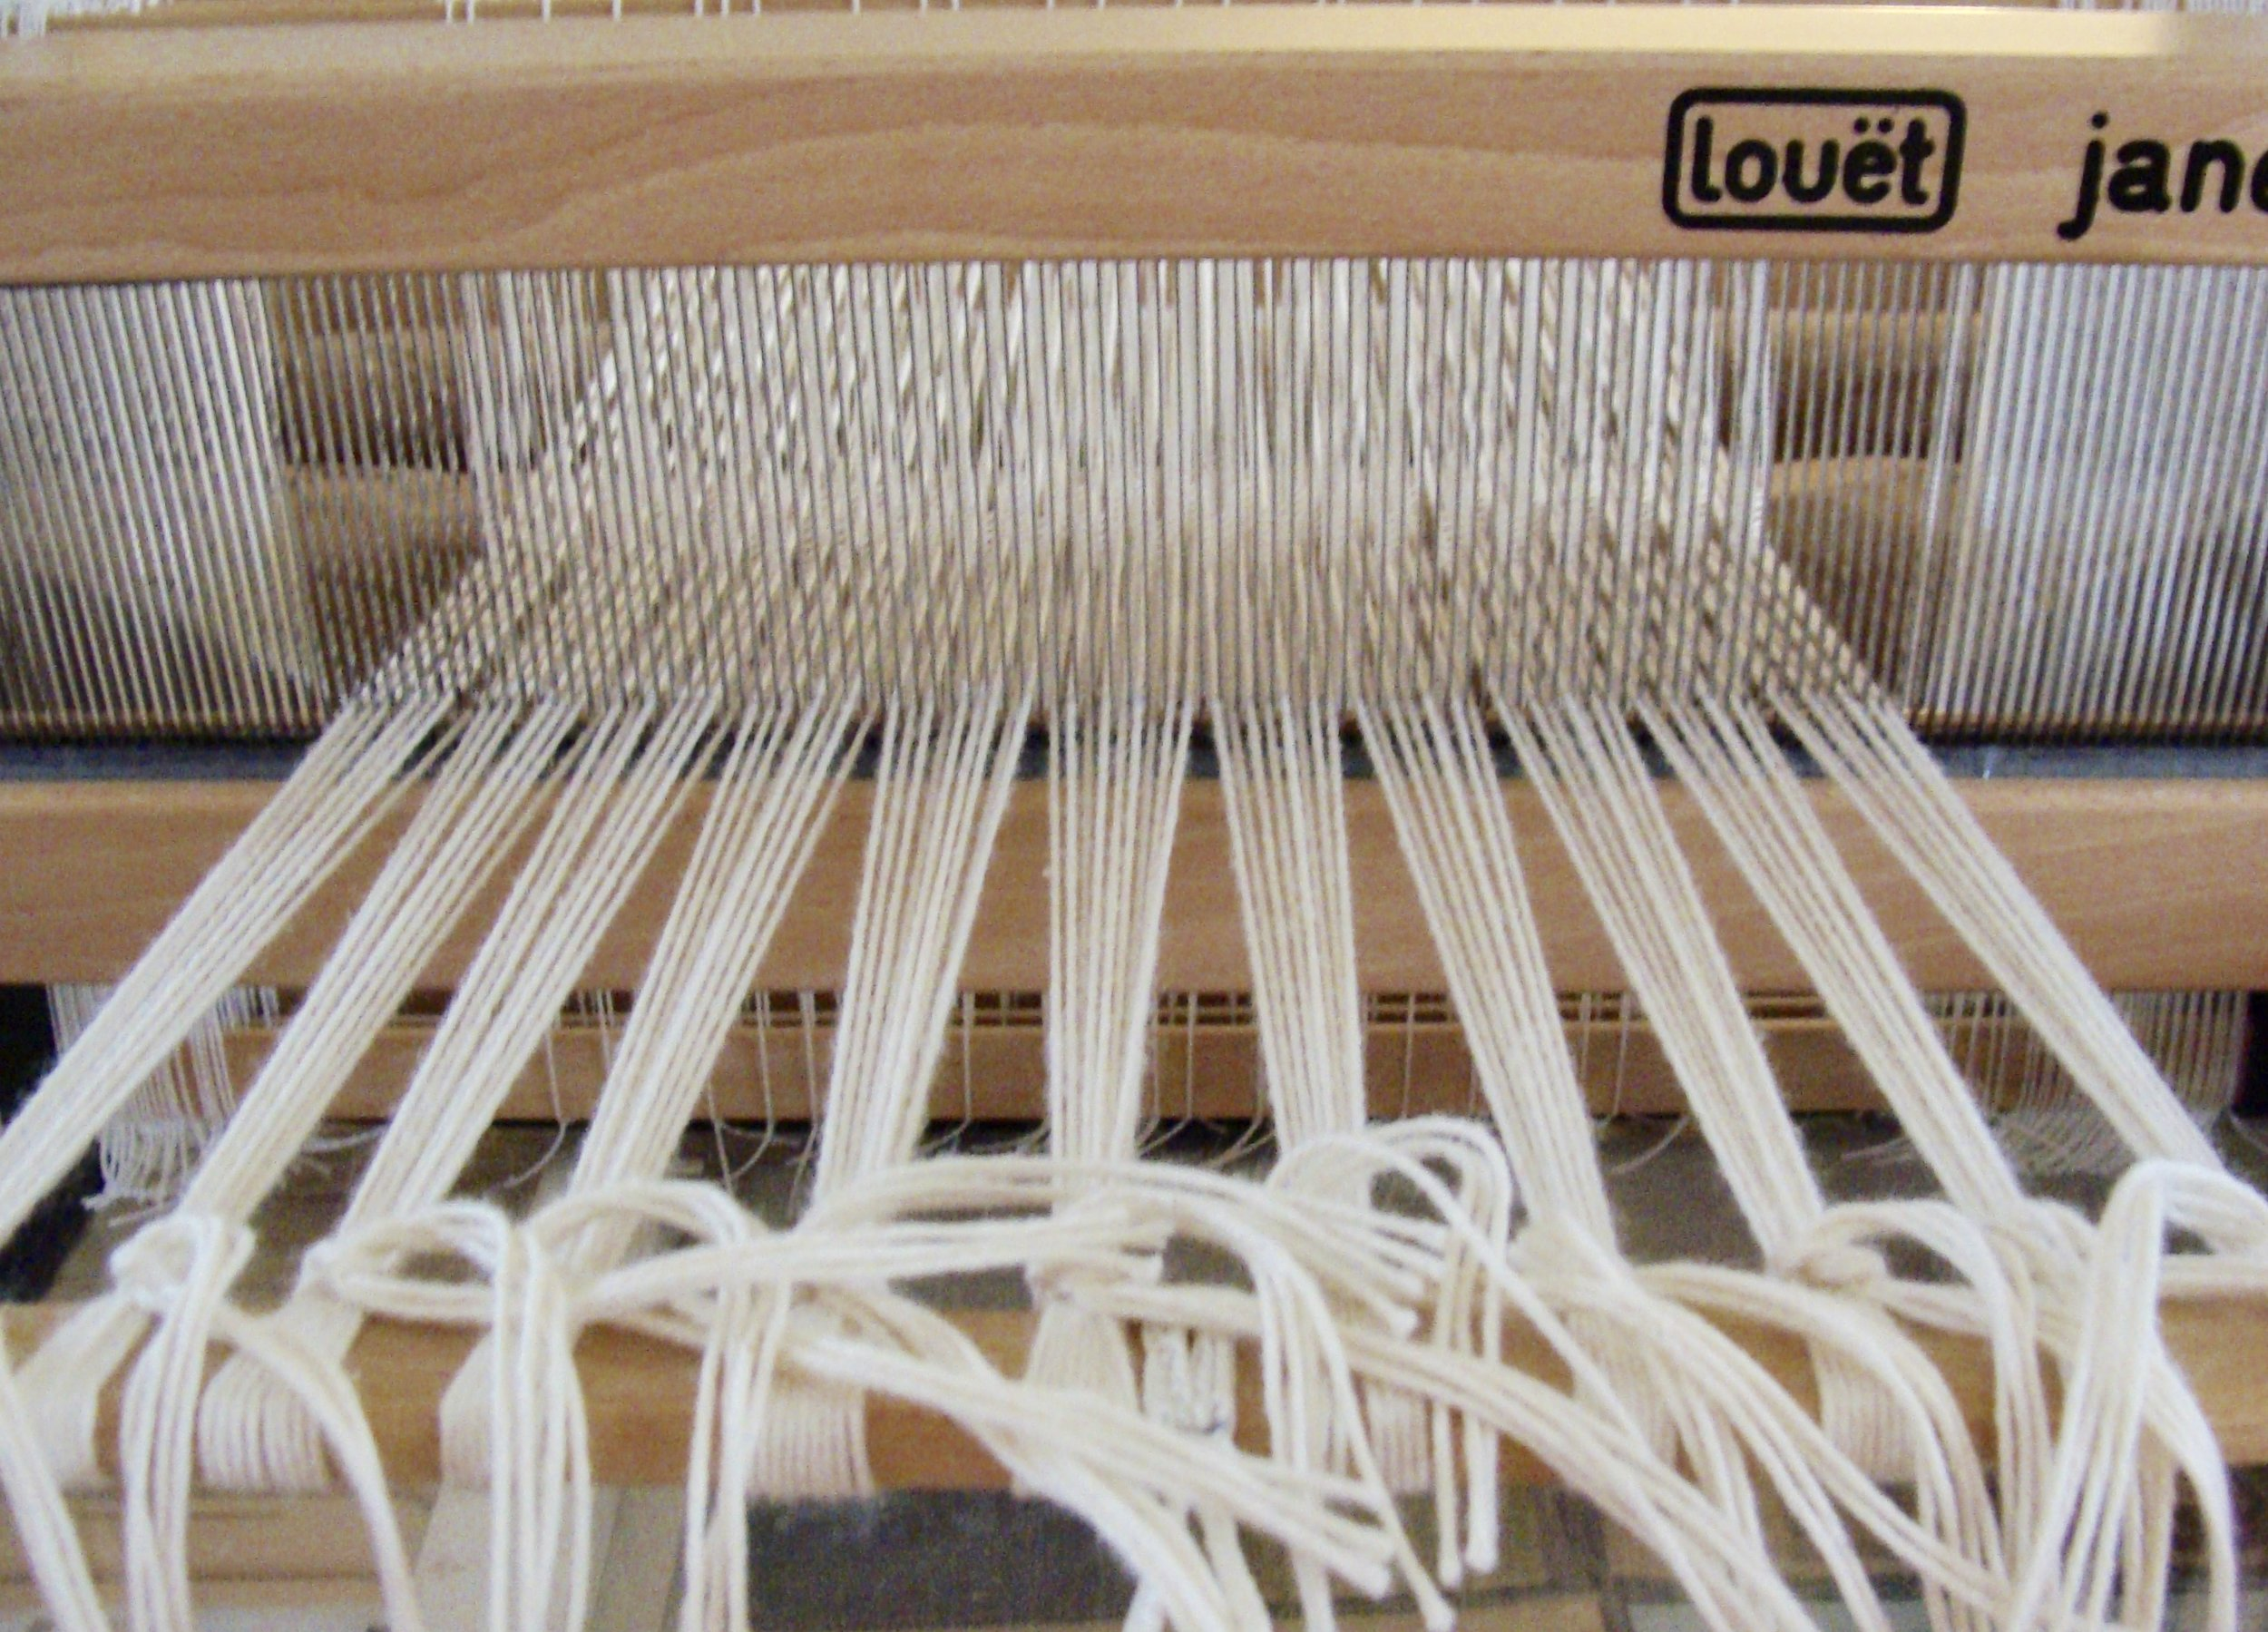 8/4 cotton warp ready for the next weft-faced sampler